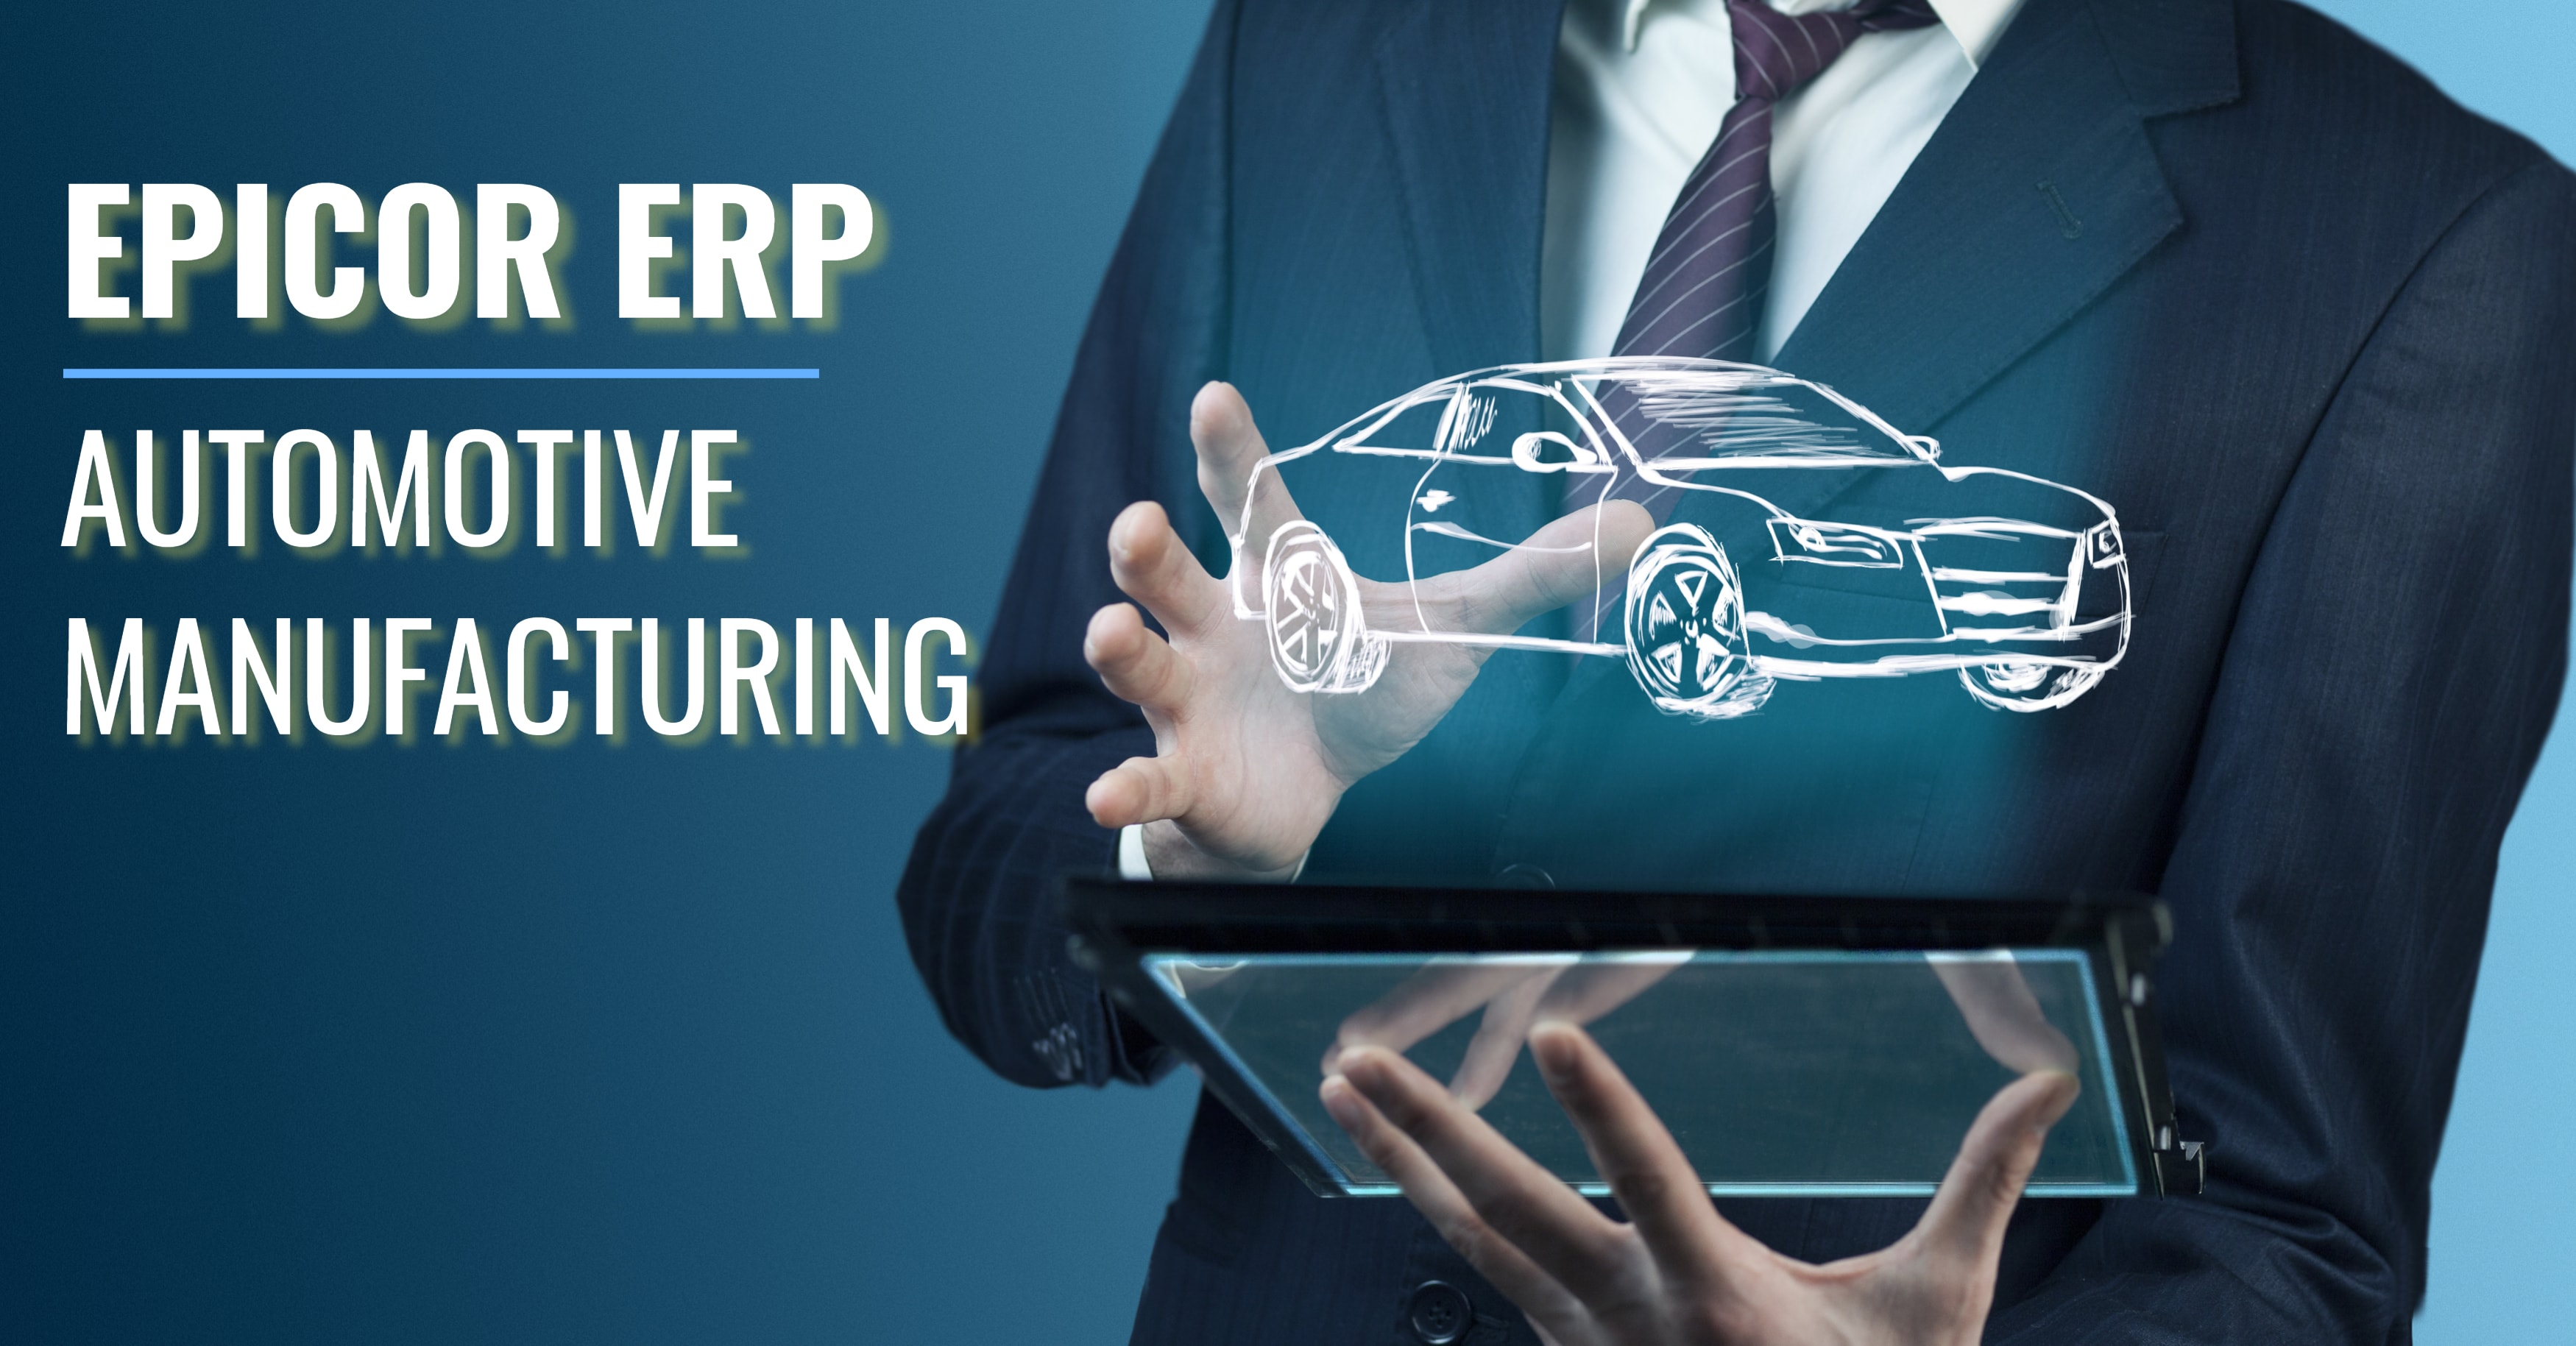 Epicor Stays Up to Speed with Automotive Manufacturing